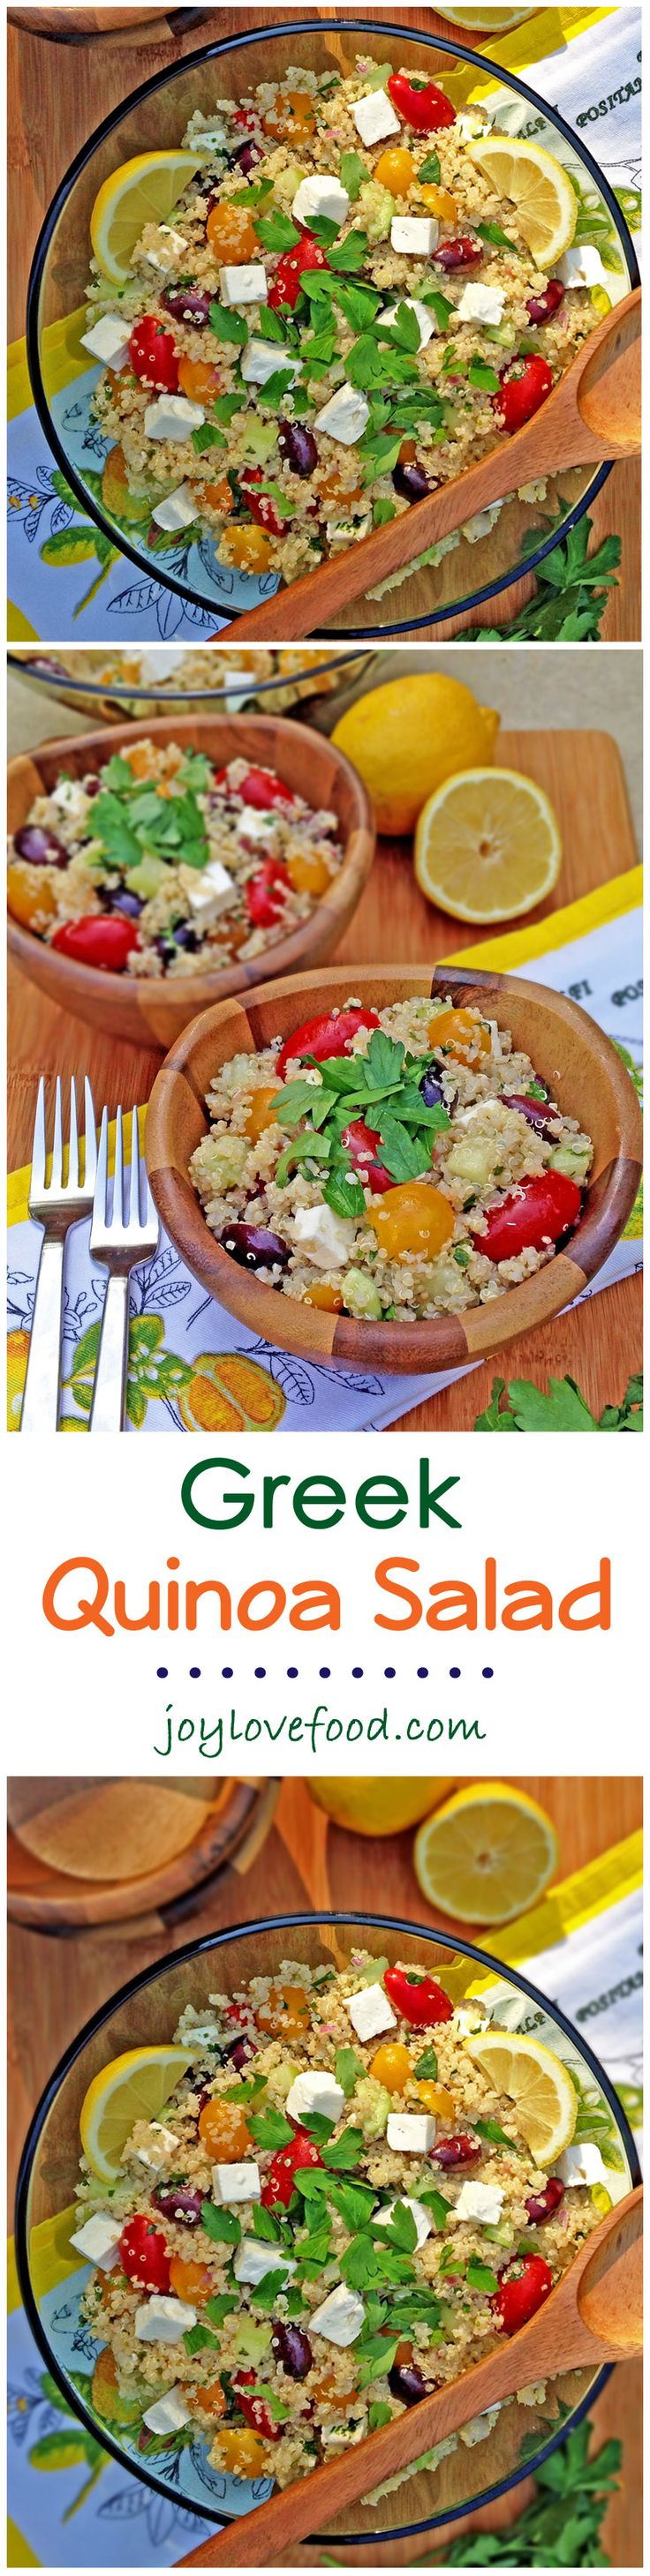 A quick and healthy salad for lunch or dinner. This is an easy recipe for Greek Quinoa Salad